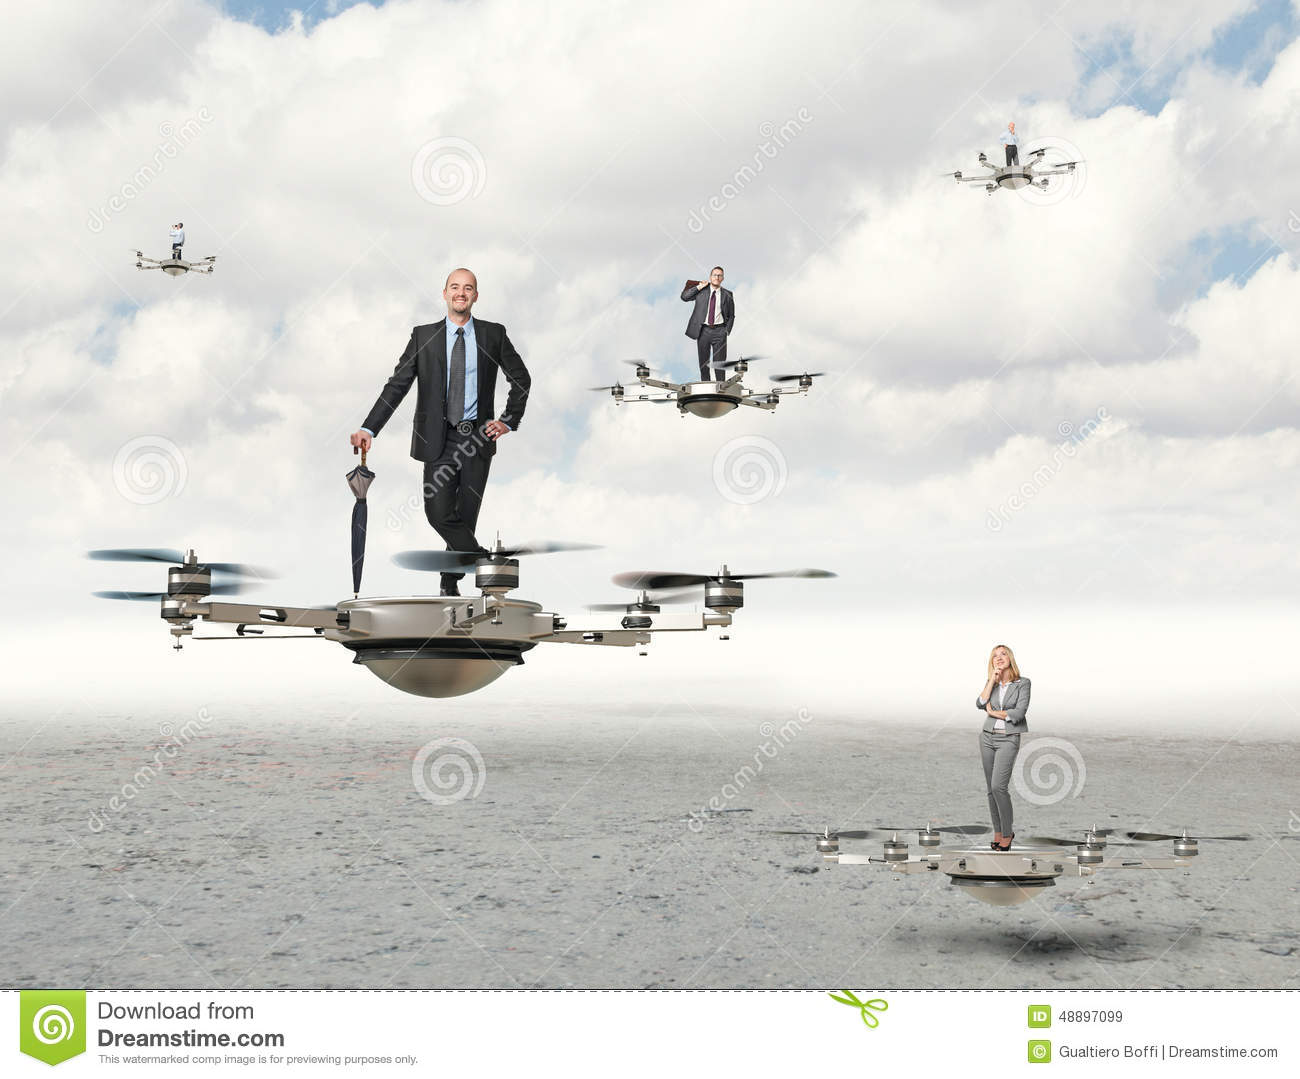 Drone business stock image  Image of helicopter, desert